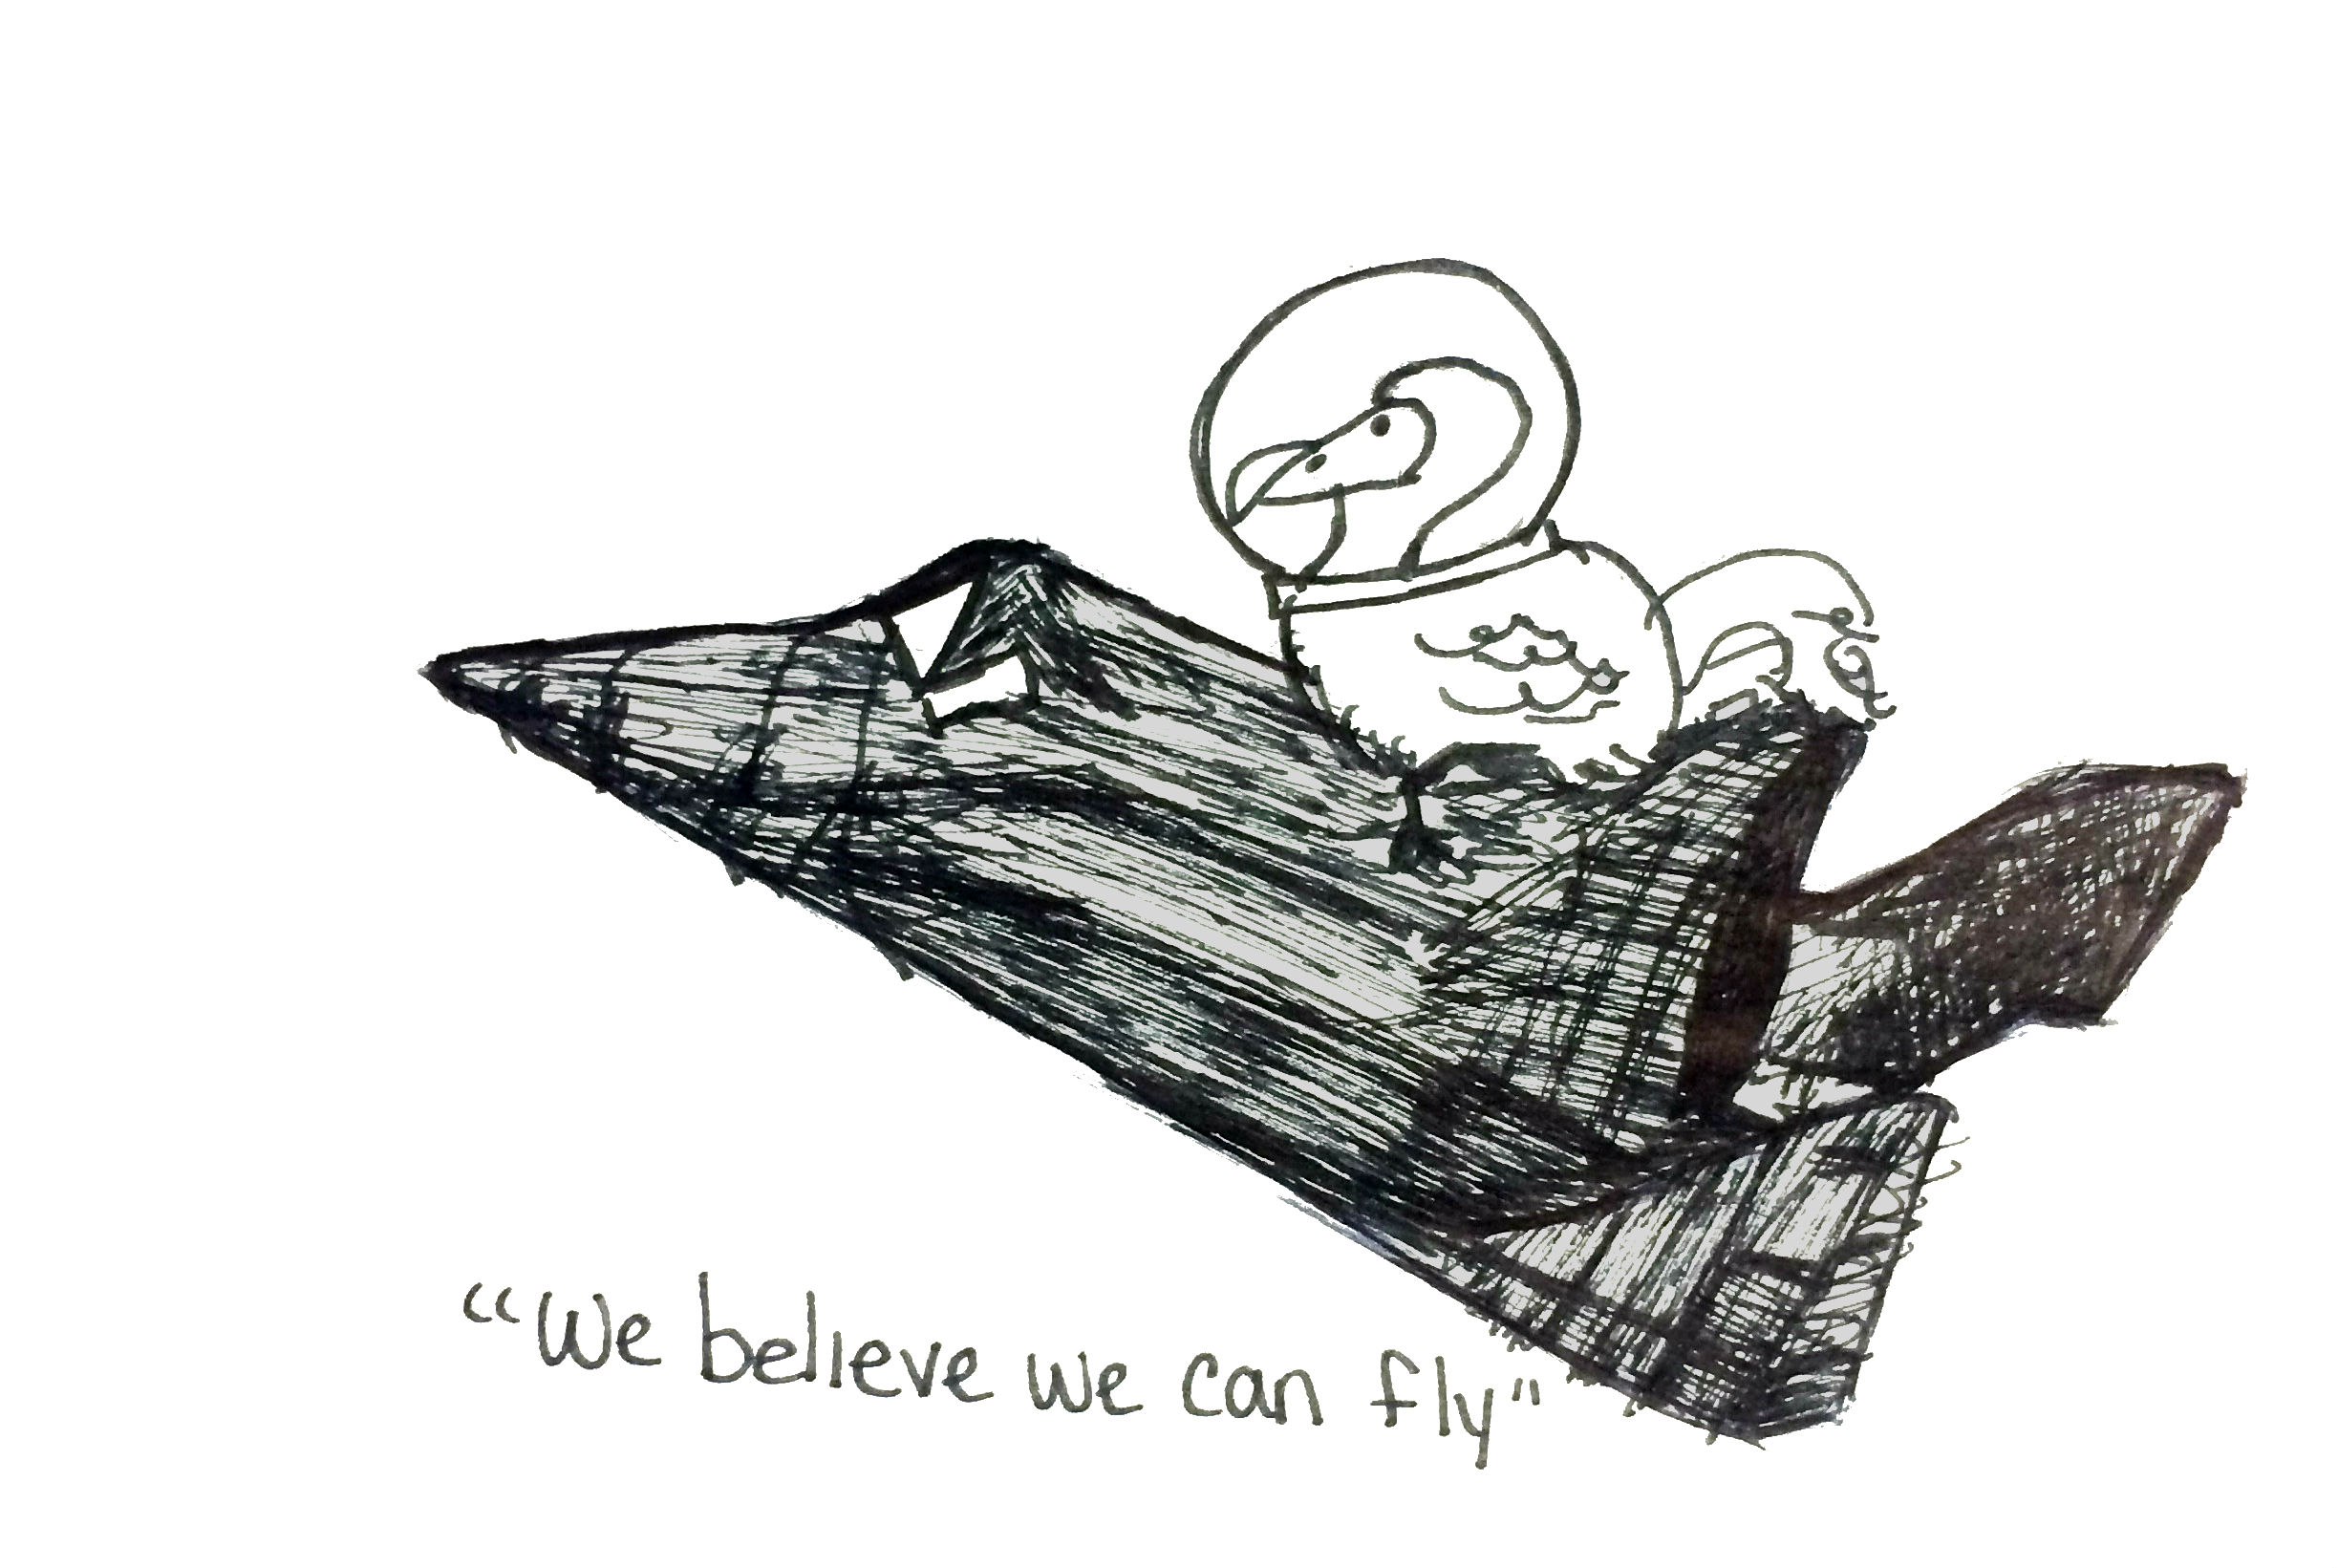 we believe we can fly